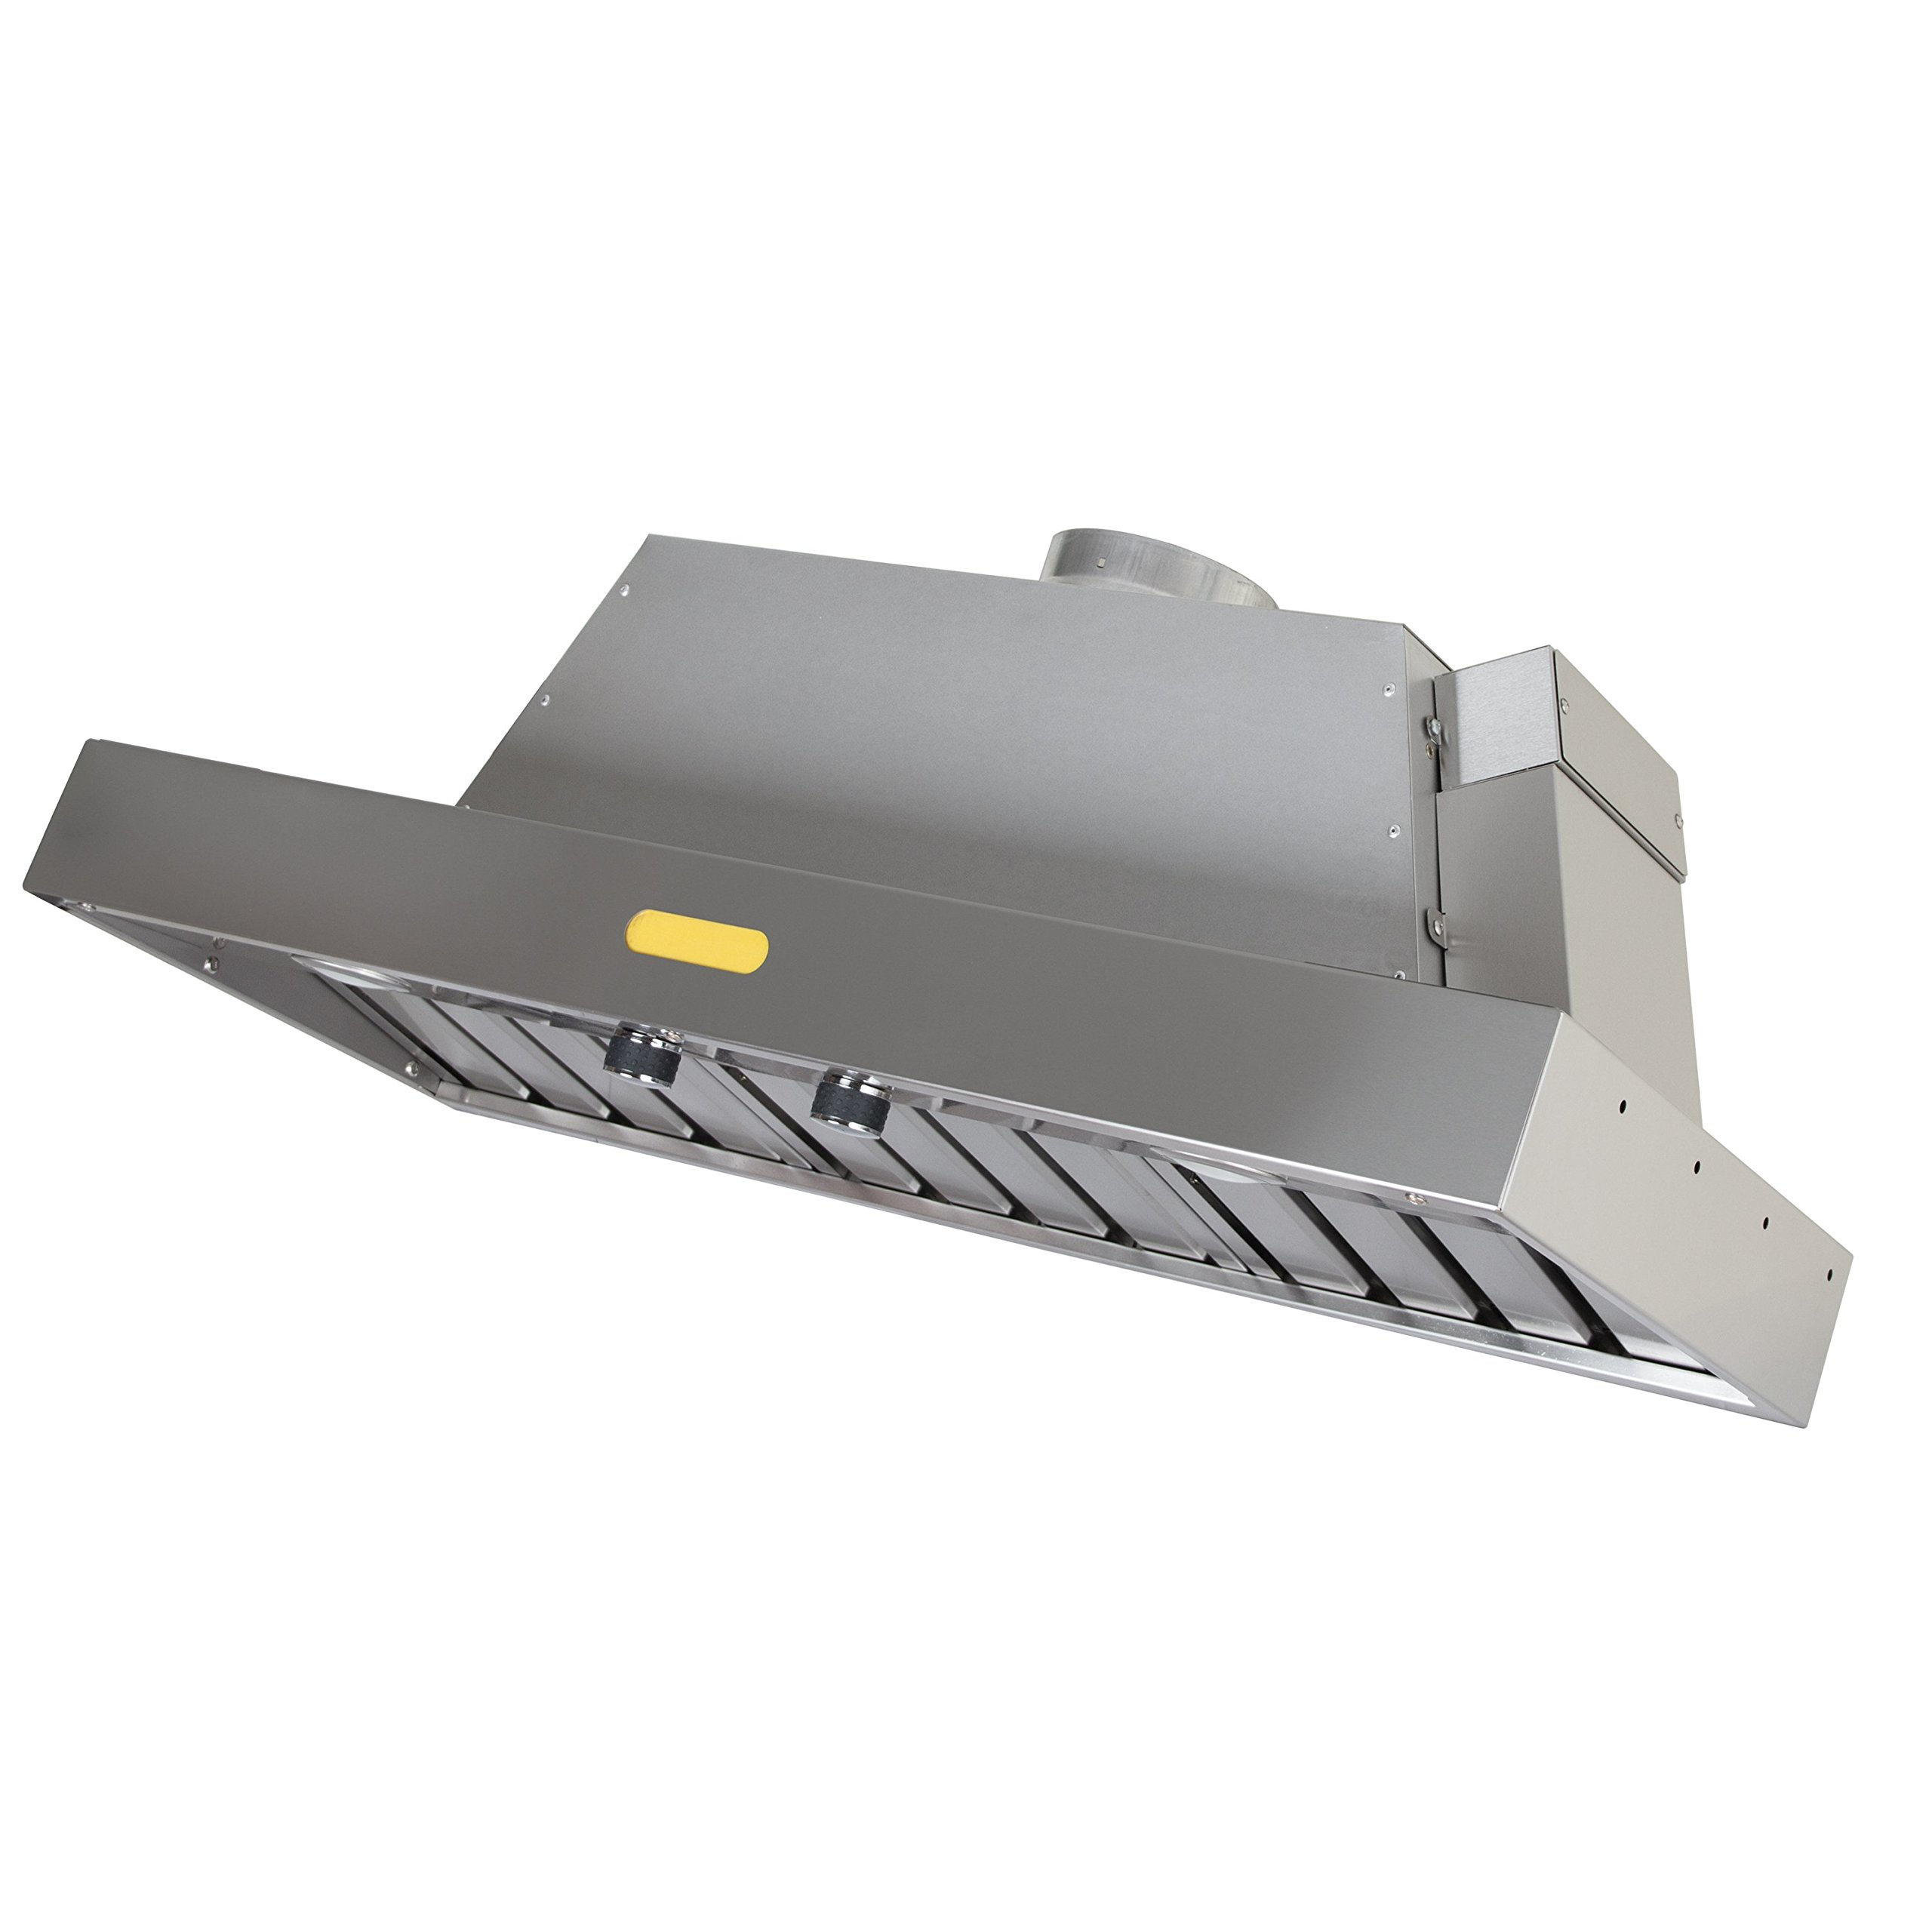 Foremost FRHI-42M Professional Series Range Hood Insert, Brushed Stainless Steel